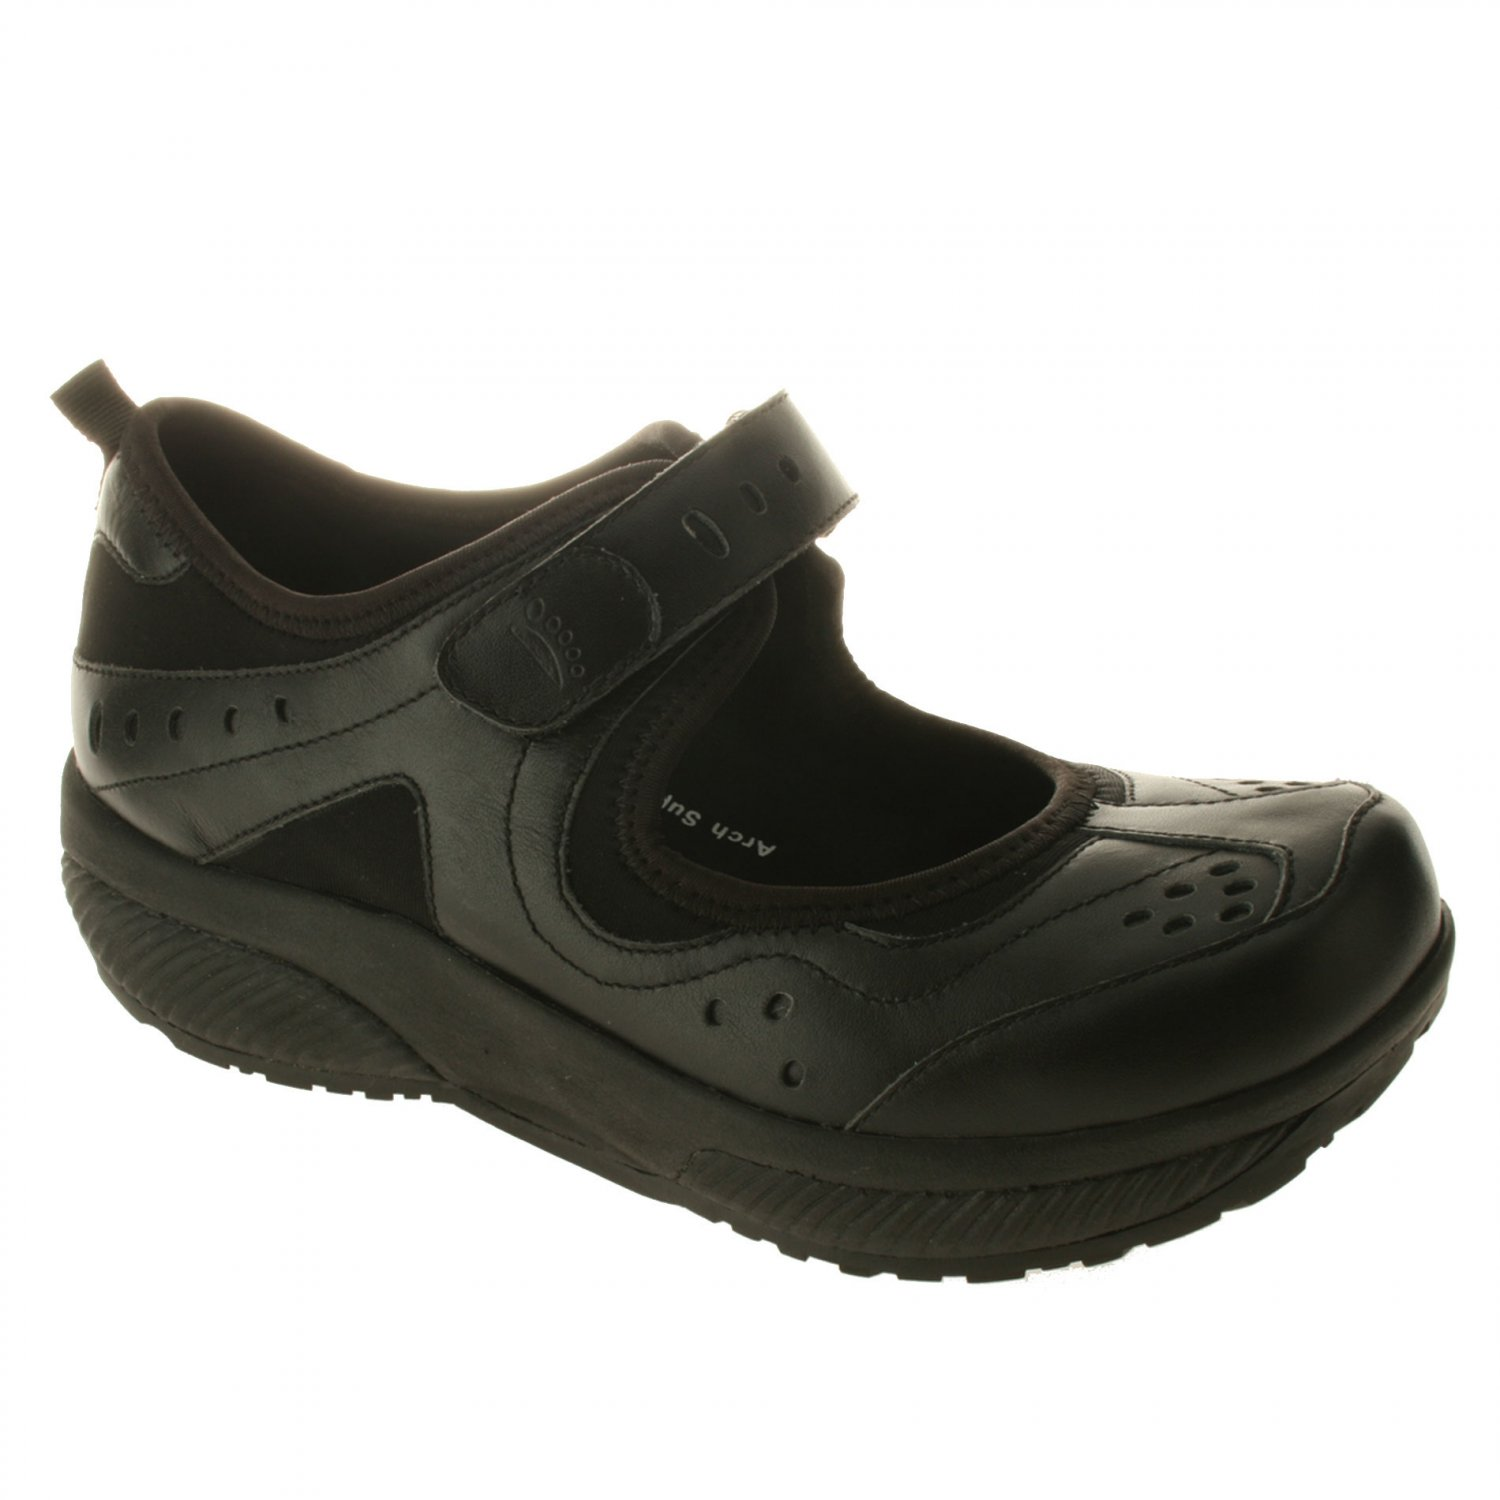 Spring Step OPTIMA Sandals Shoes All Sizes & Colors $9